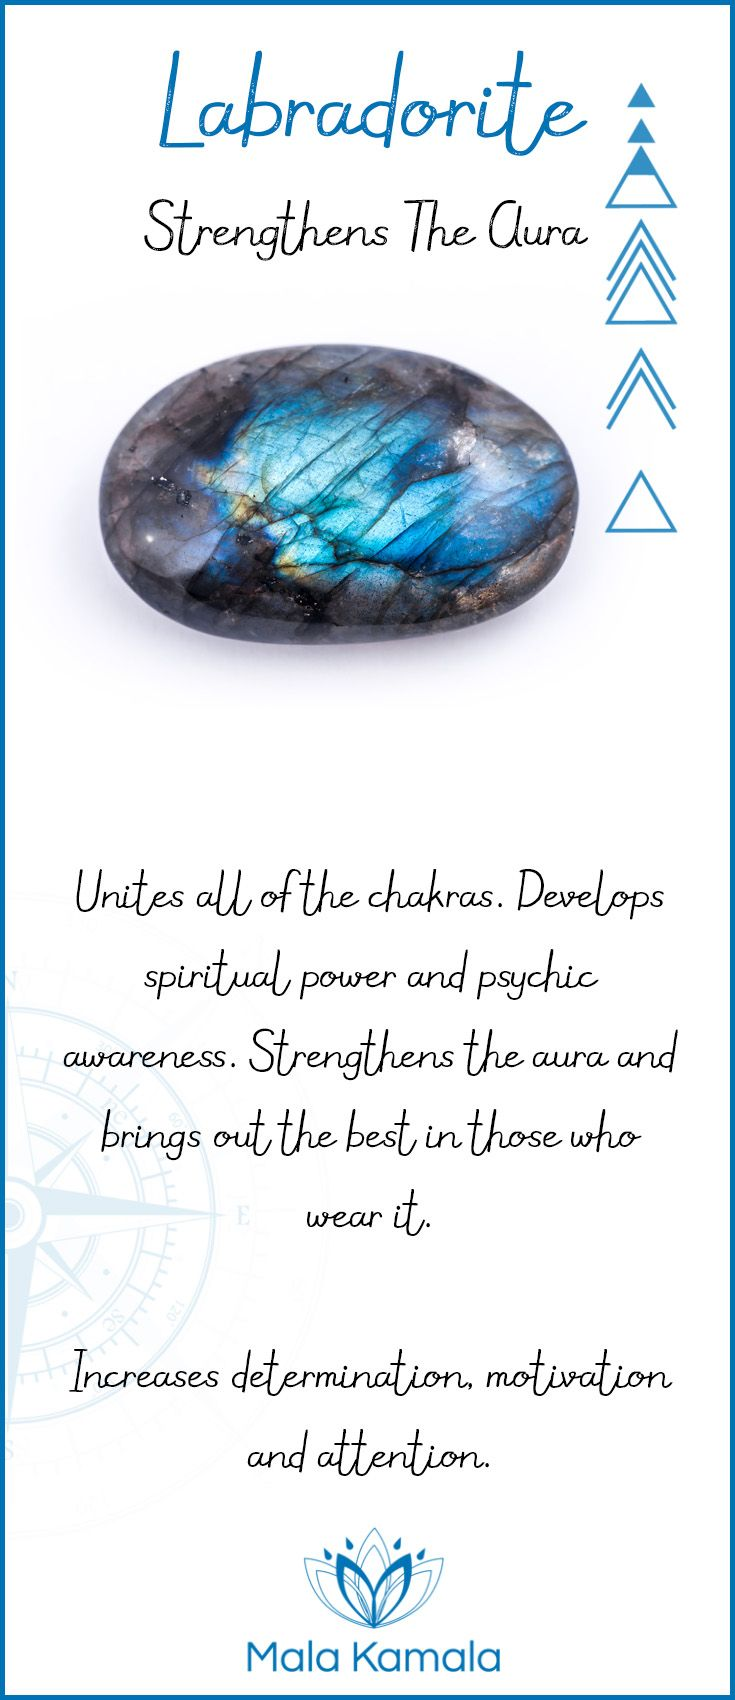 What is the meaning and crystal and chakra healing properties of labradorite? A stone for strengthening the aura.